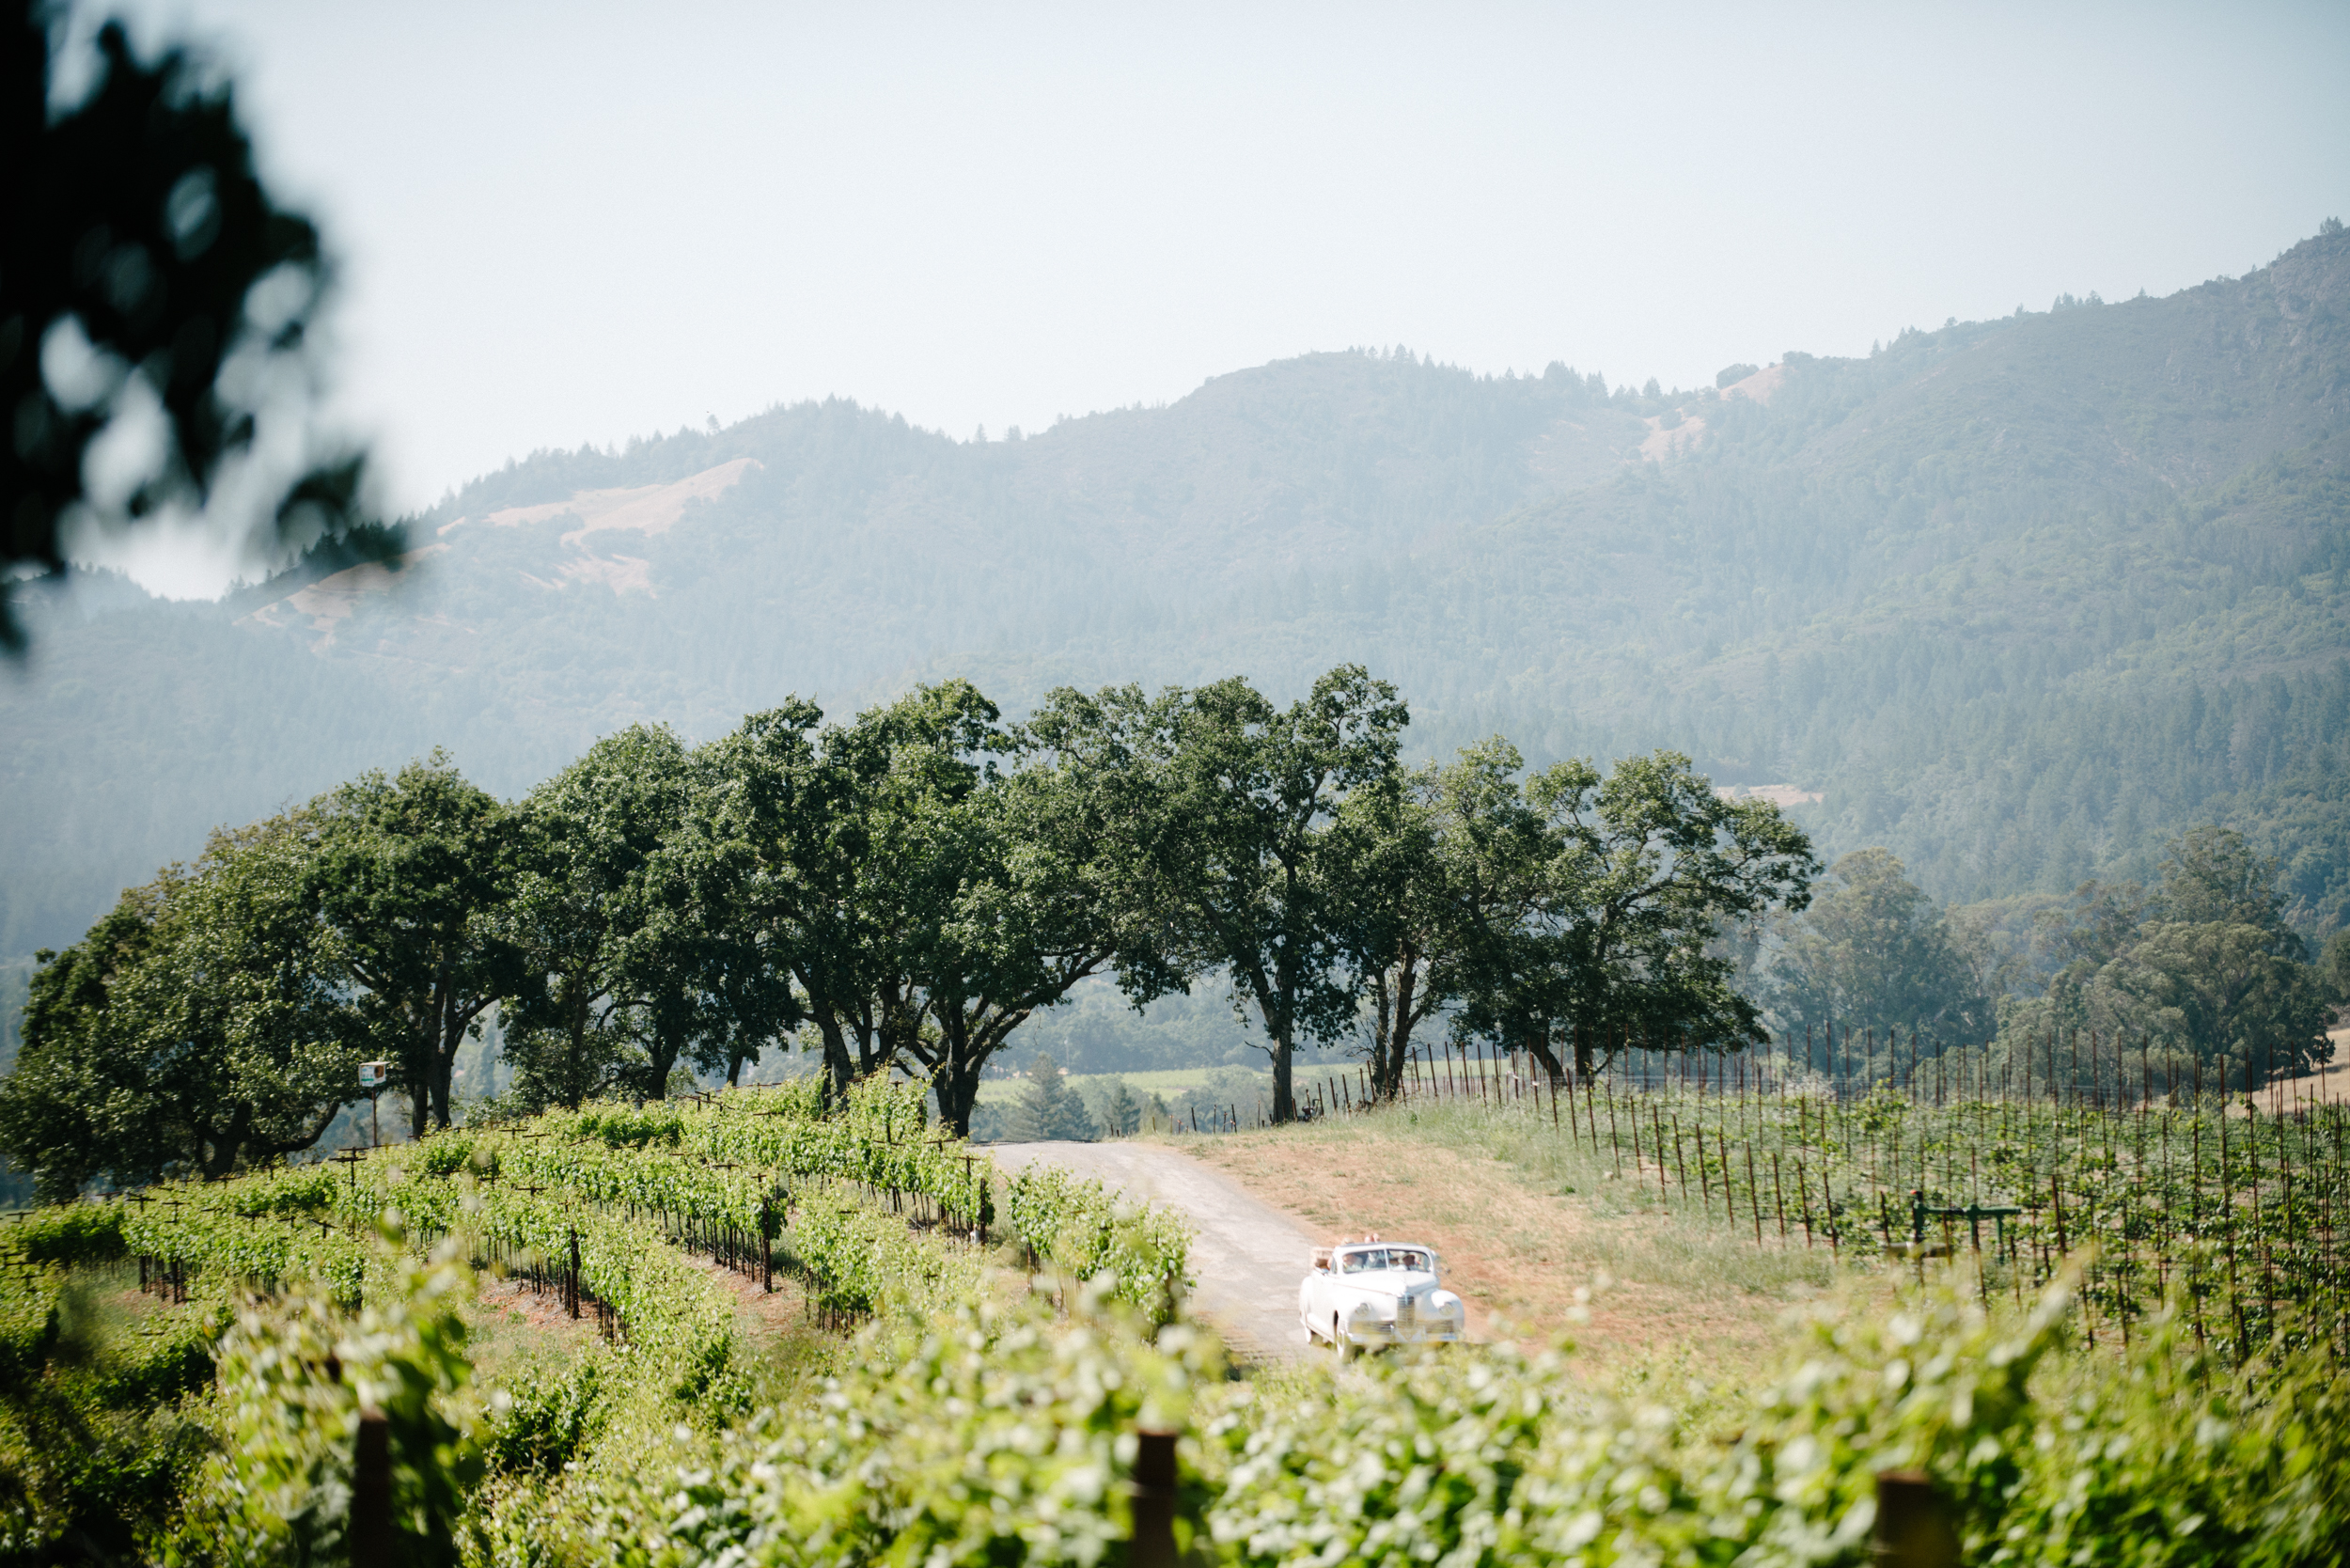 Sylvie-Gil-film-destination-photography-Kunde-winery-Napa-Valley-elegant-shabby-chic-bride-arrival-vintage-convertible